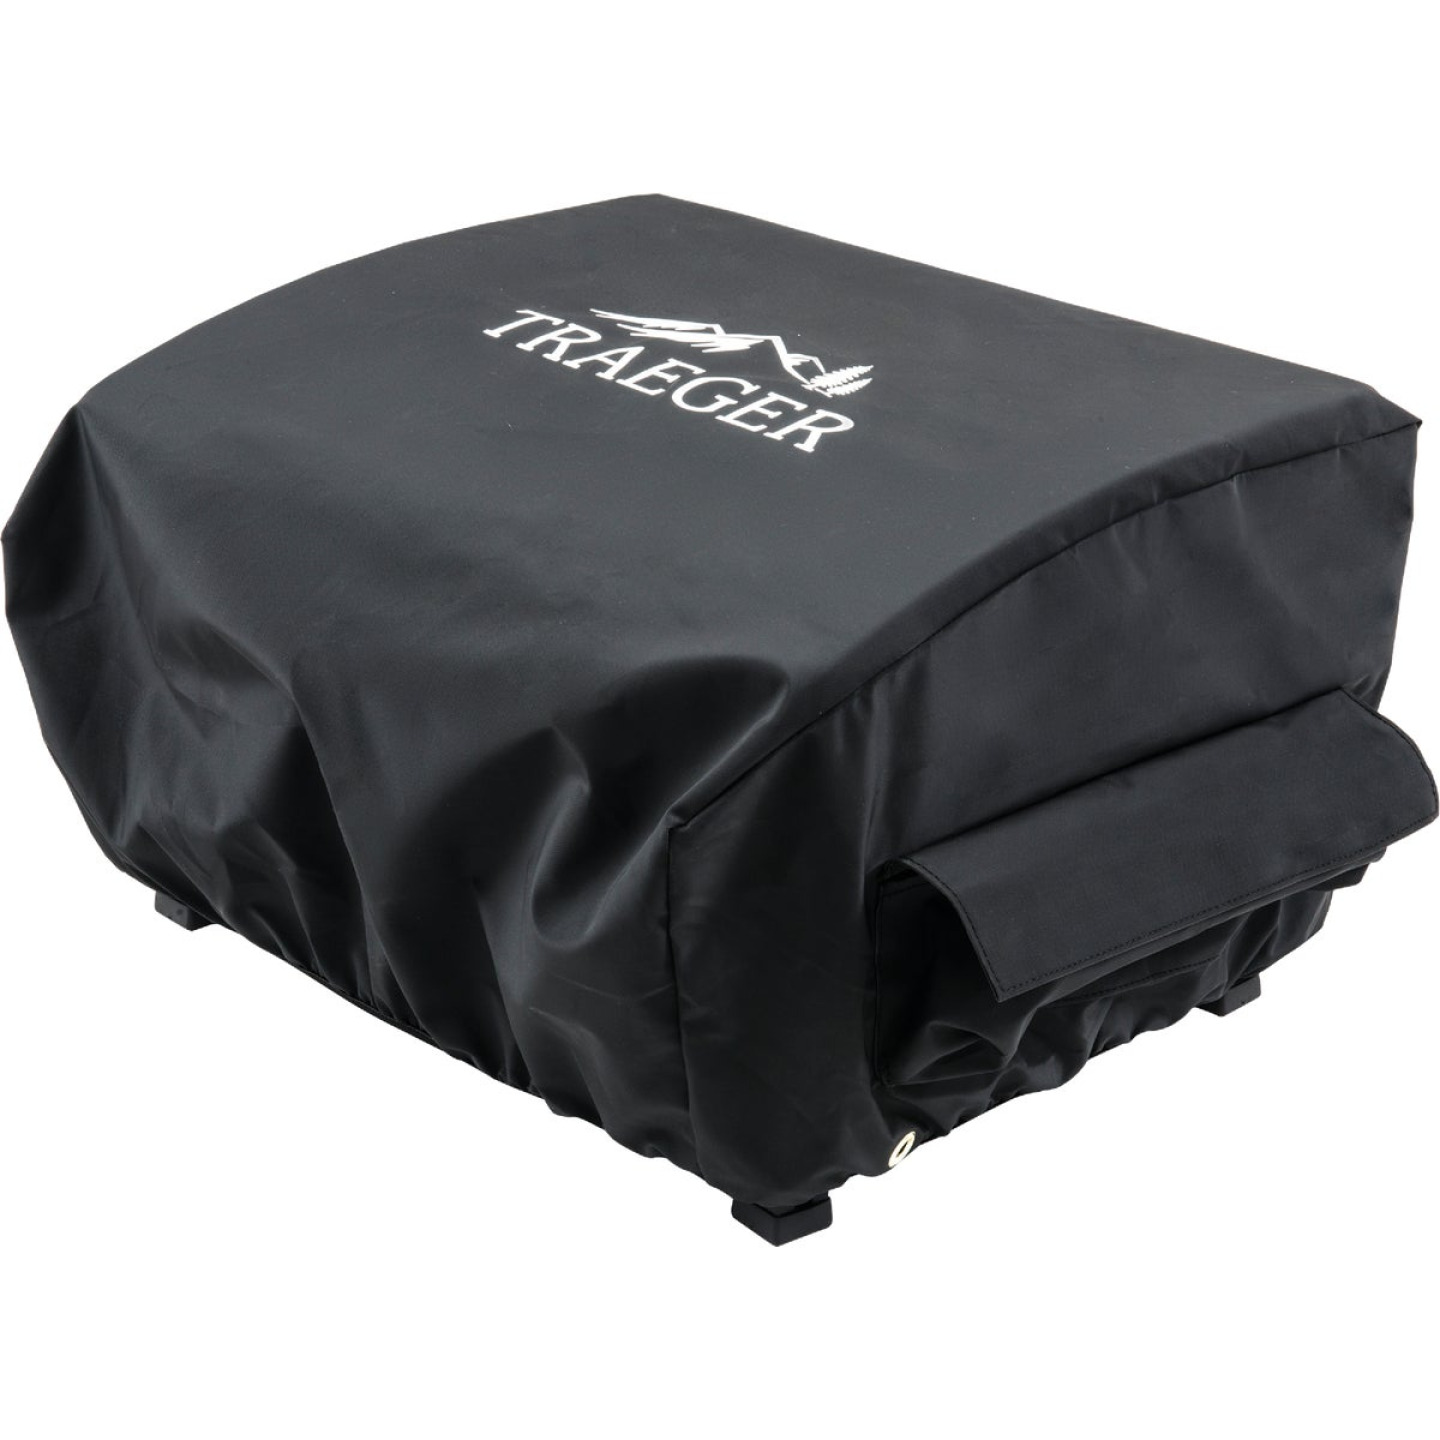 Traeger Scout & Ranger 21 In. Black All-Weather Grill Cover Image 1